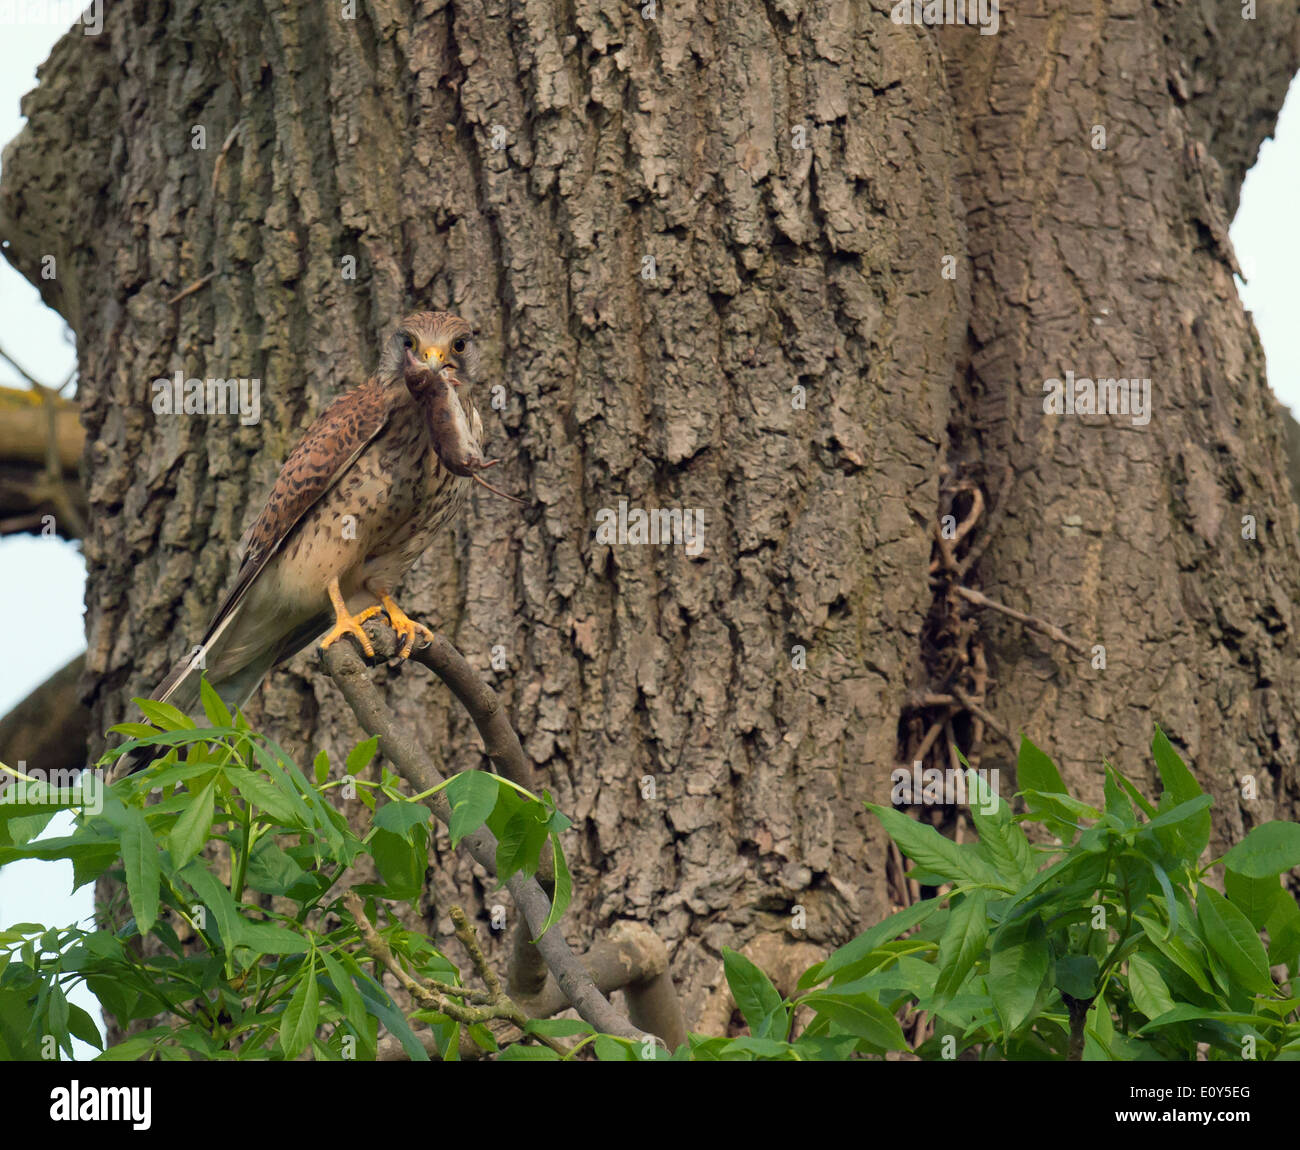 Wild female Kestrel, Falco tinnunculus perched with vole - Stock Image